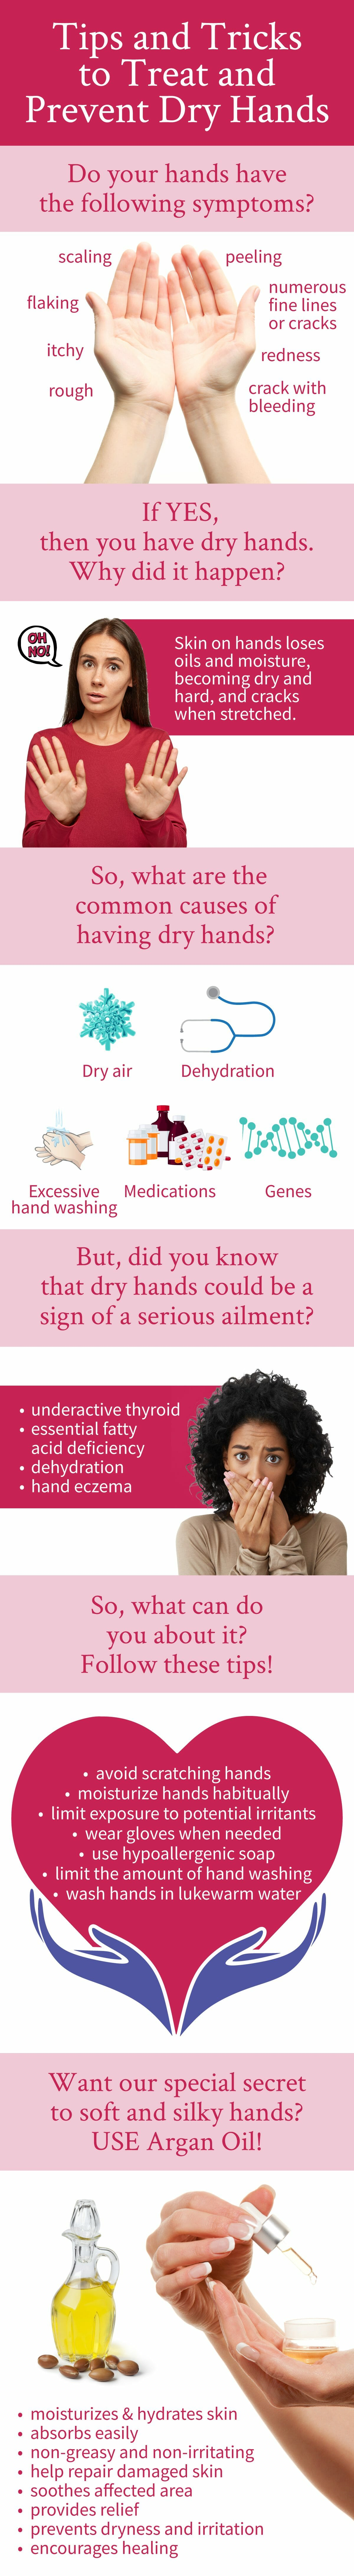 dry hands infographic